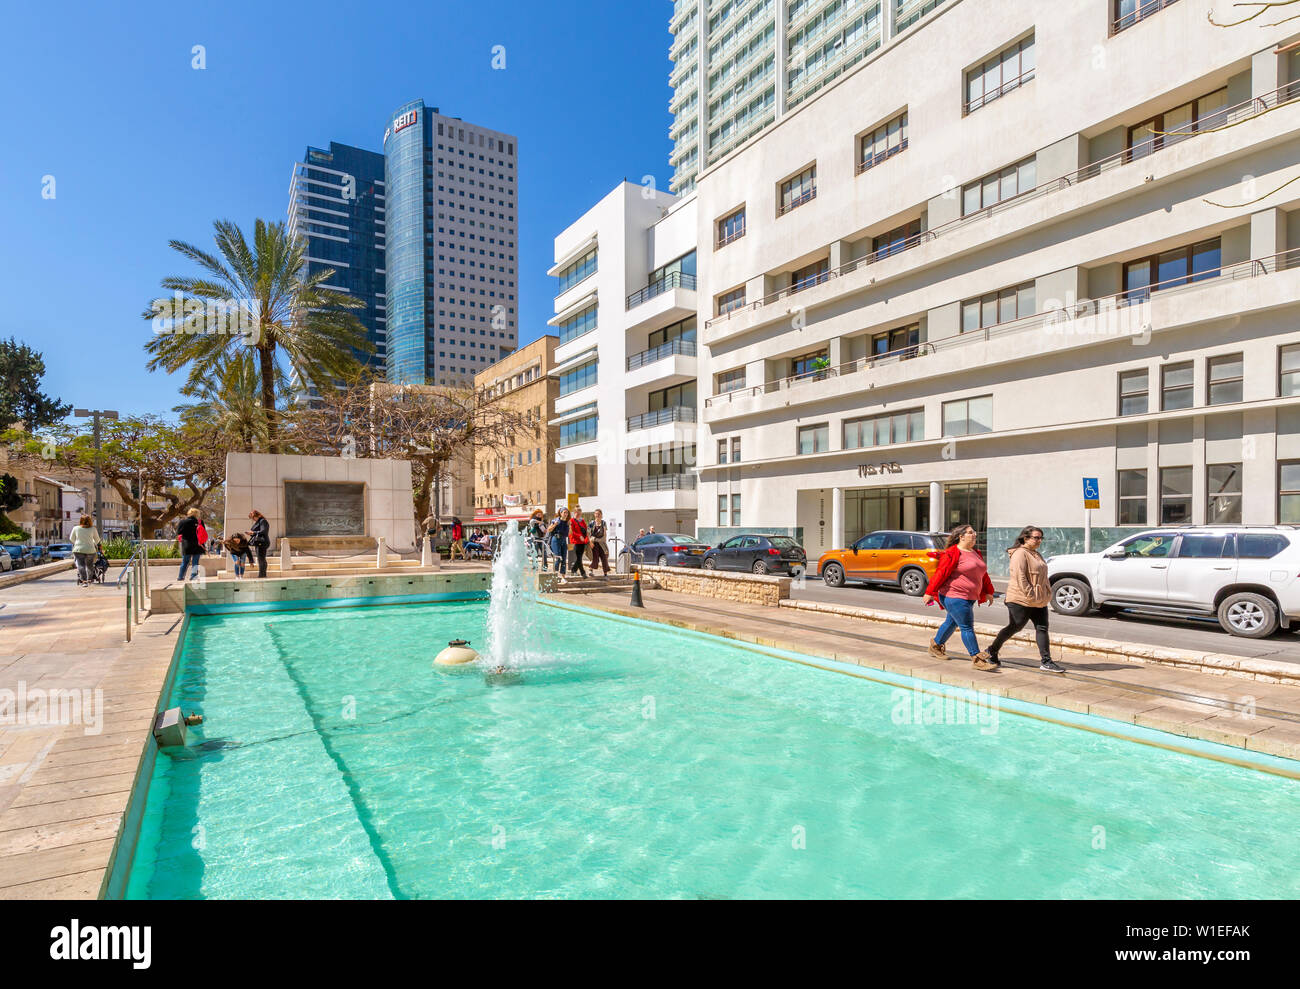 View of Founders Monument and Fountain on Rothschild Boulevard, Tel Aviv, Israel, Middle East - Stock Image